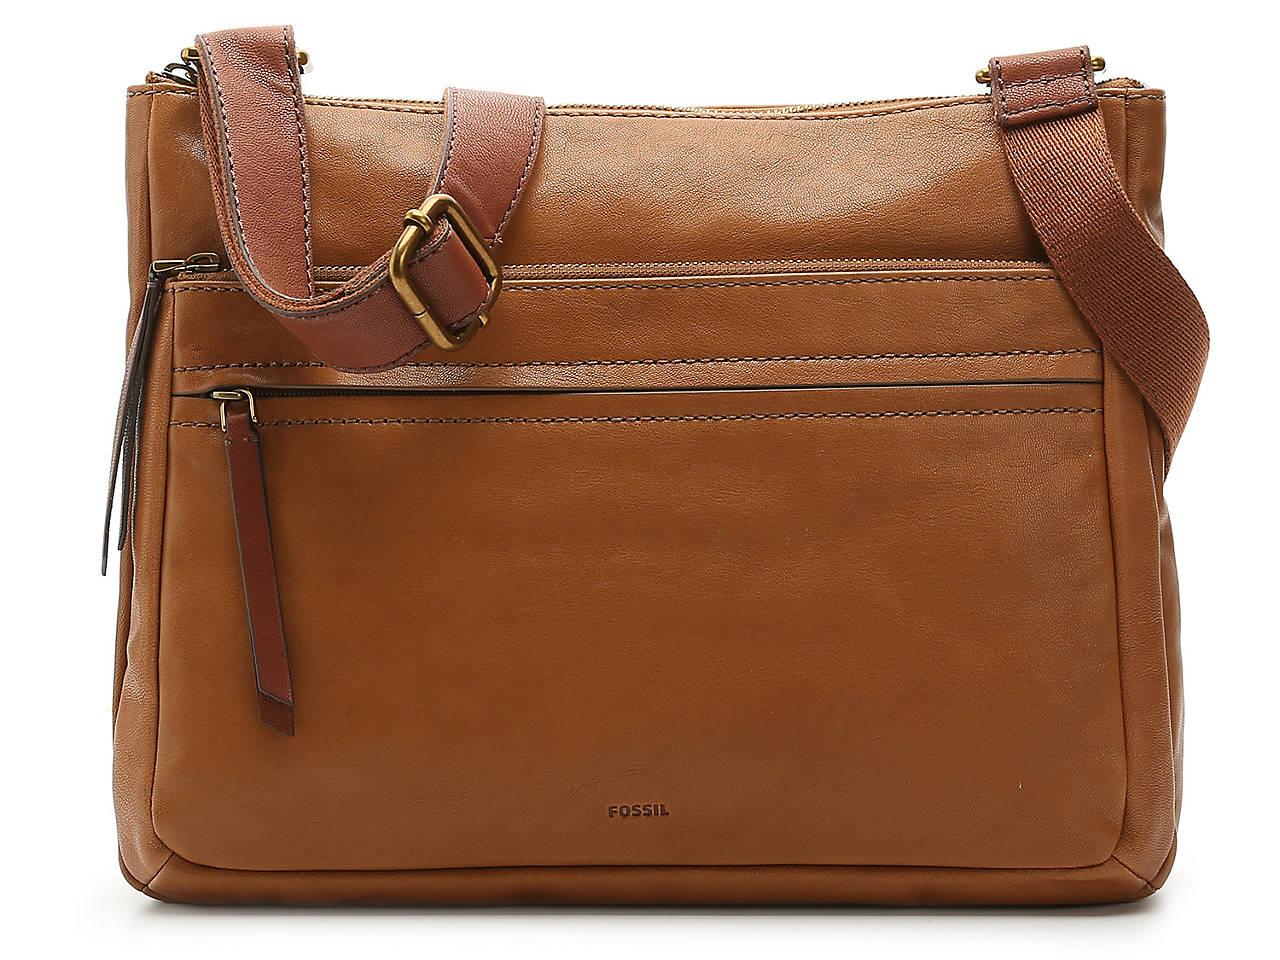 Fossil Corey Large Leather Crossbody Bag Women s Handbags   Accessories    DSW a5ac767b7d